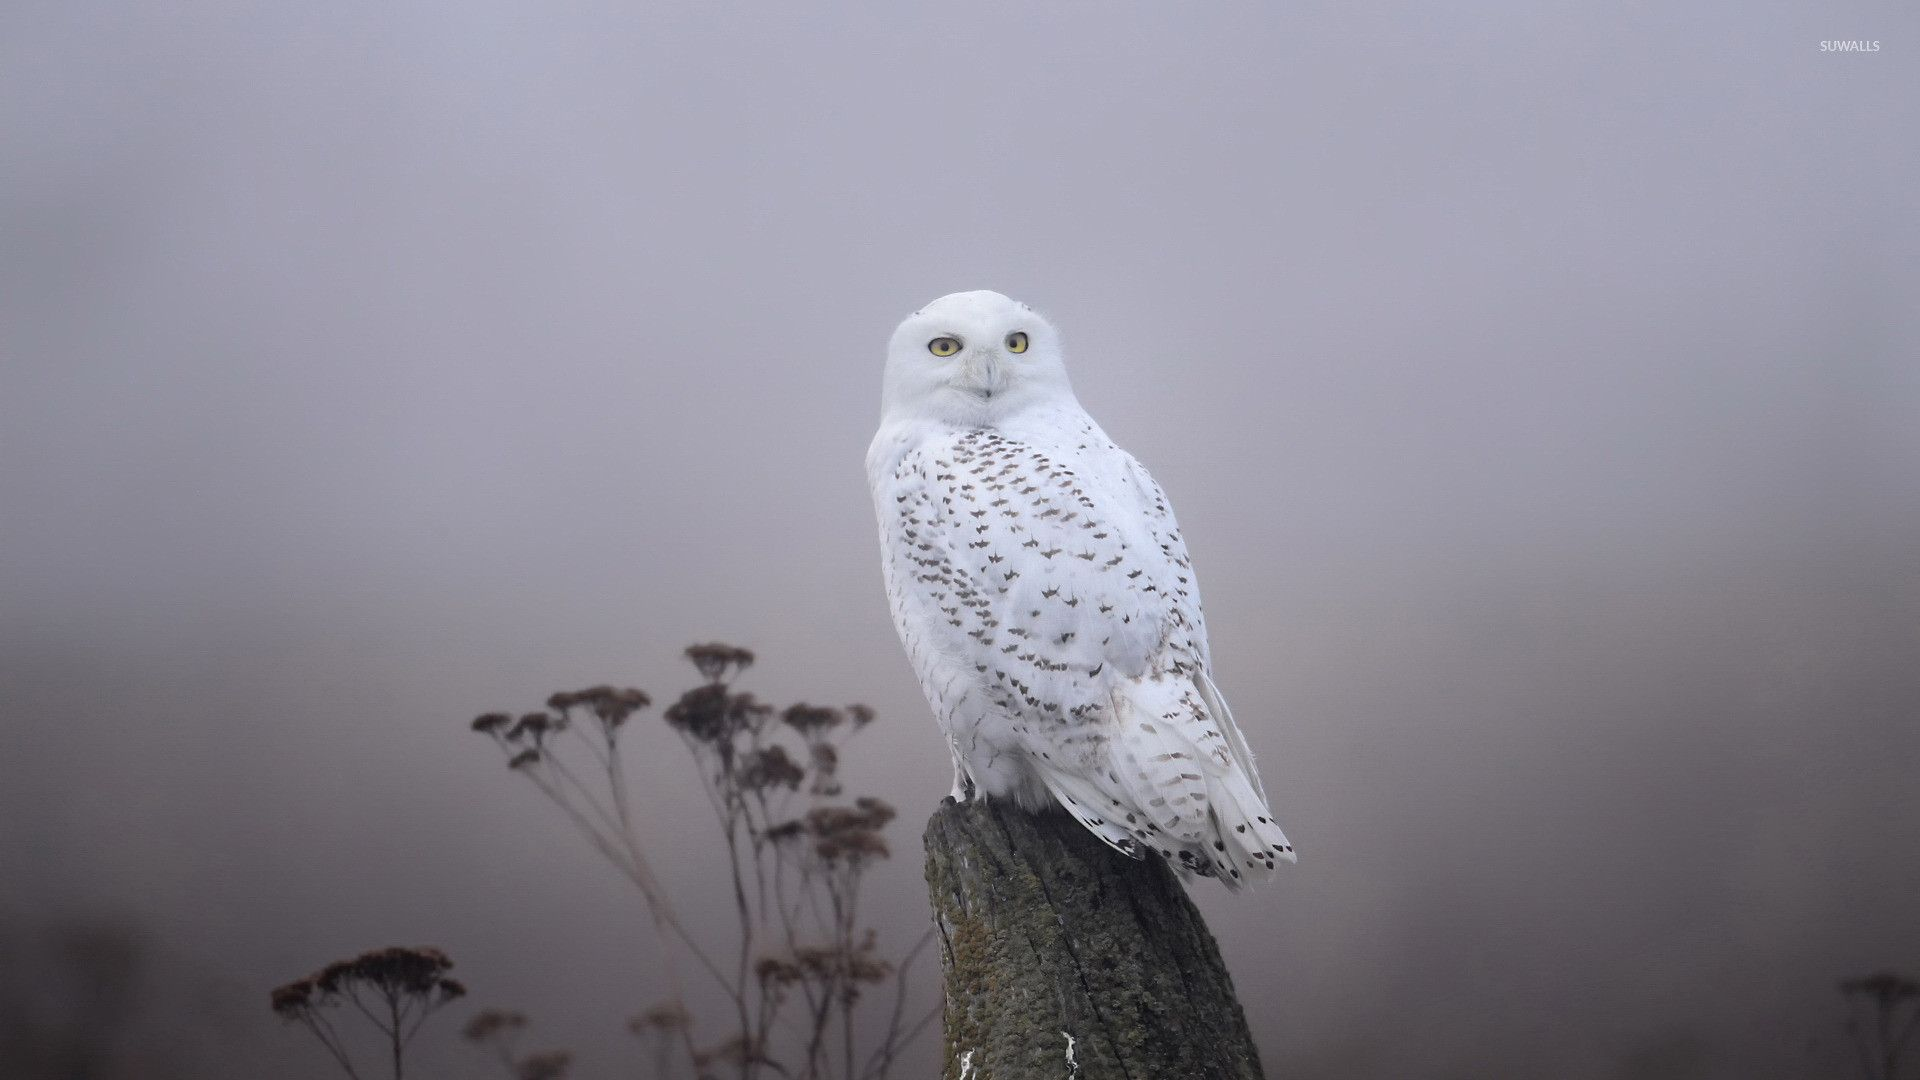 White Owl Wallpapers Top Free White Owl Backgrounds Wallpaperaccess